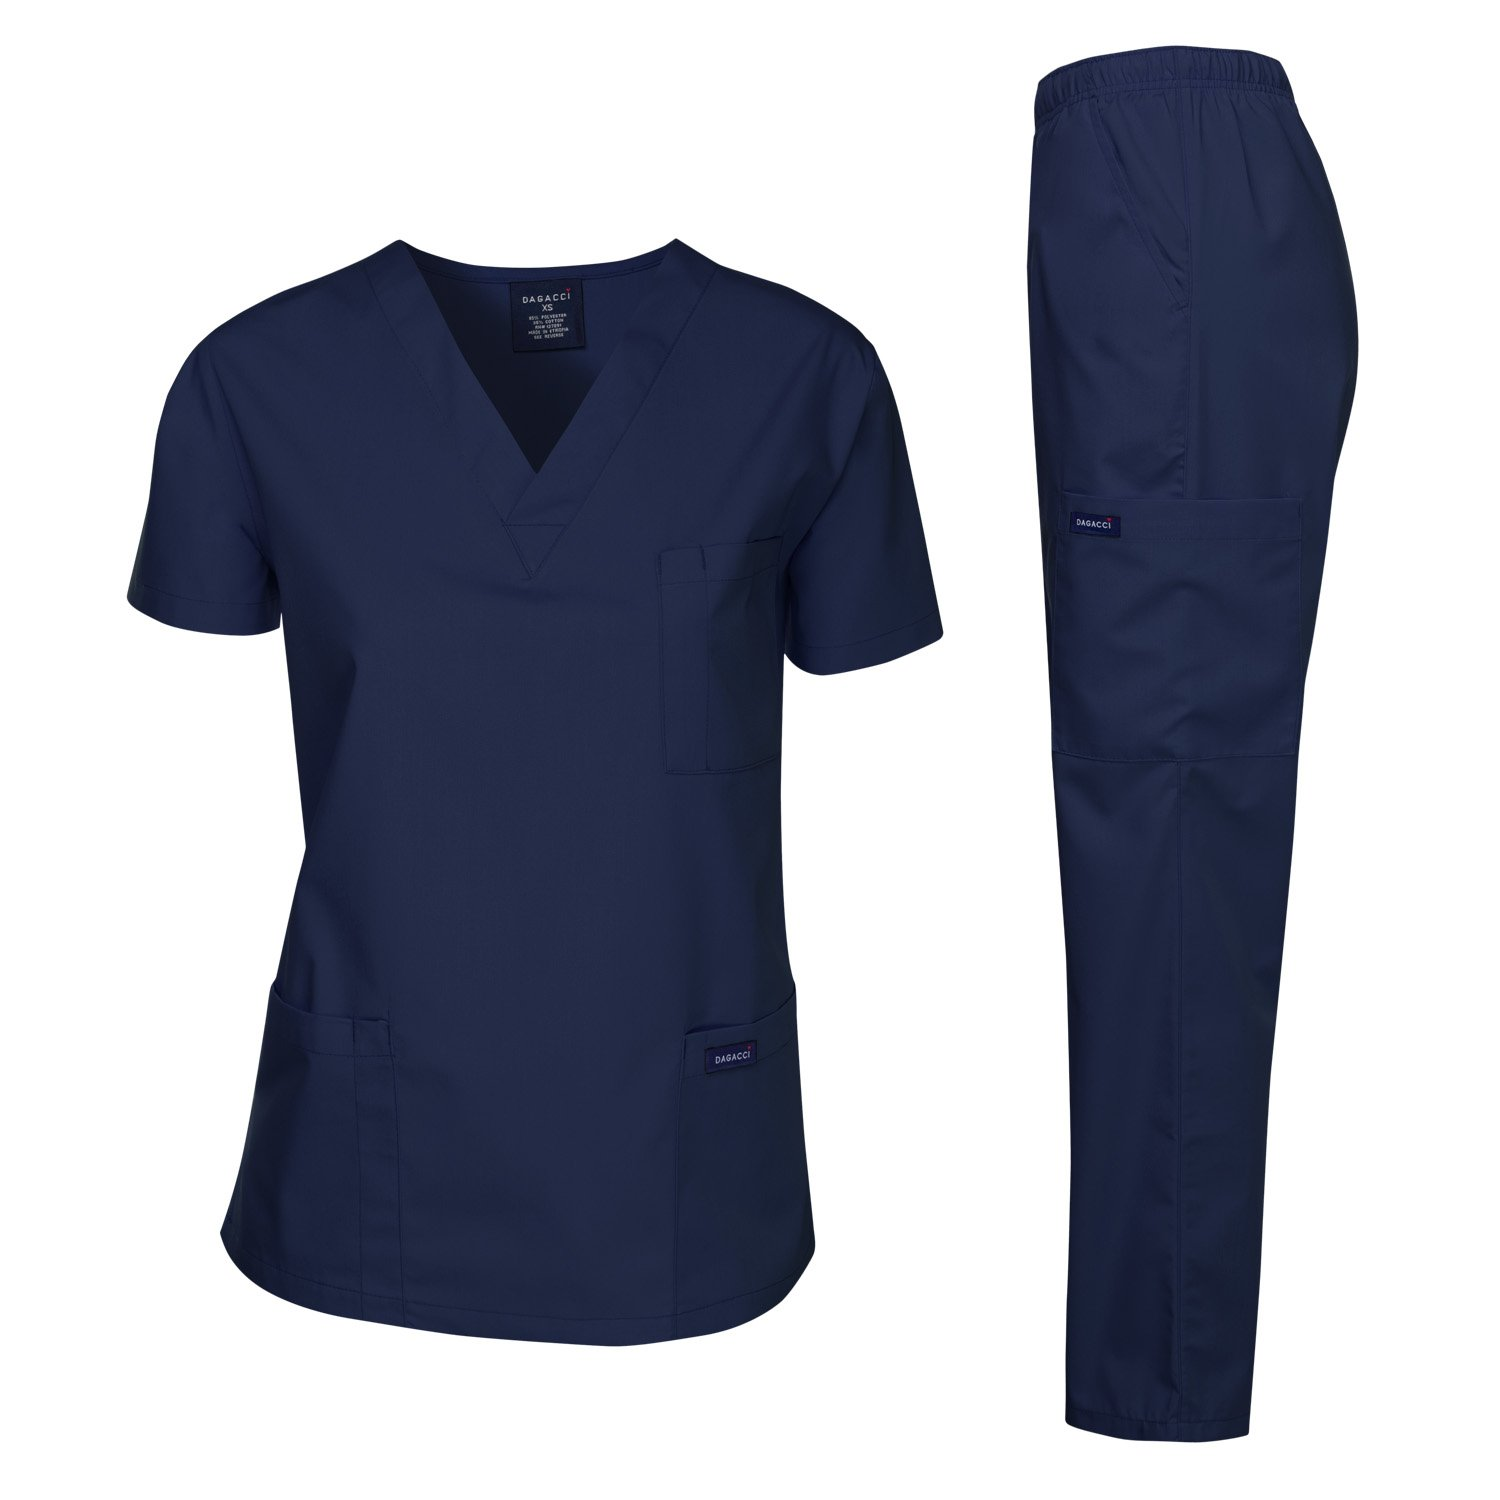 Dagacci Scrubs Medical Uniform Men Scrubs Set Medical Scrubs Top and Pants (Small, Navy) by Dagacci Medical Uniform